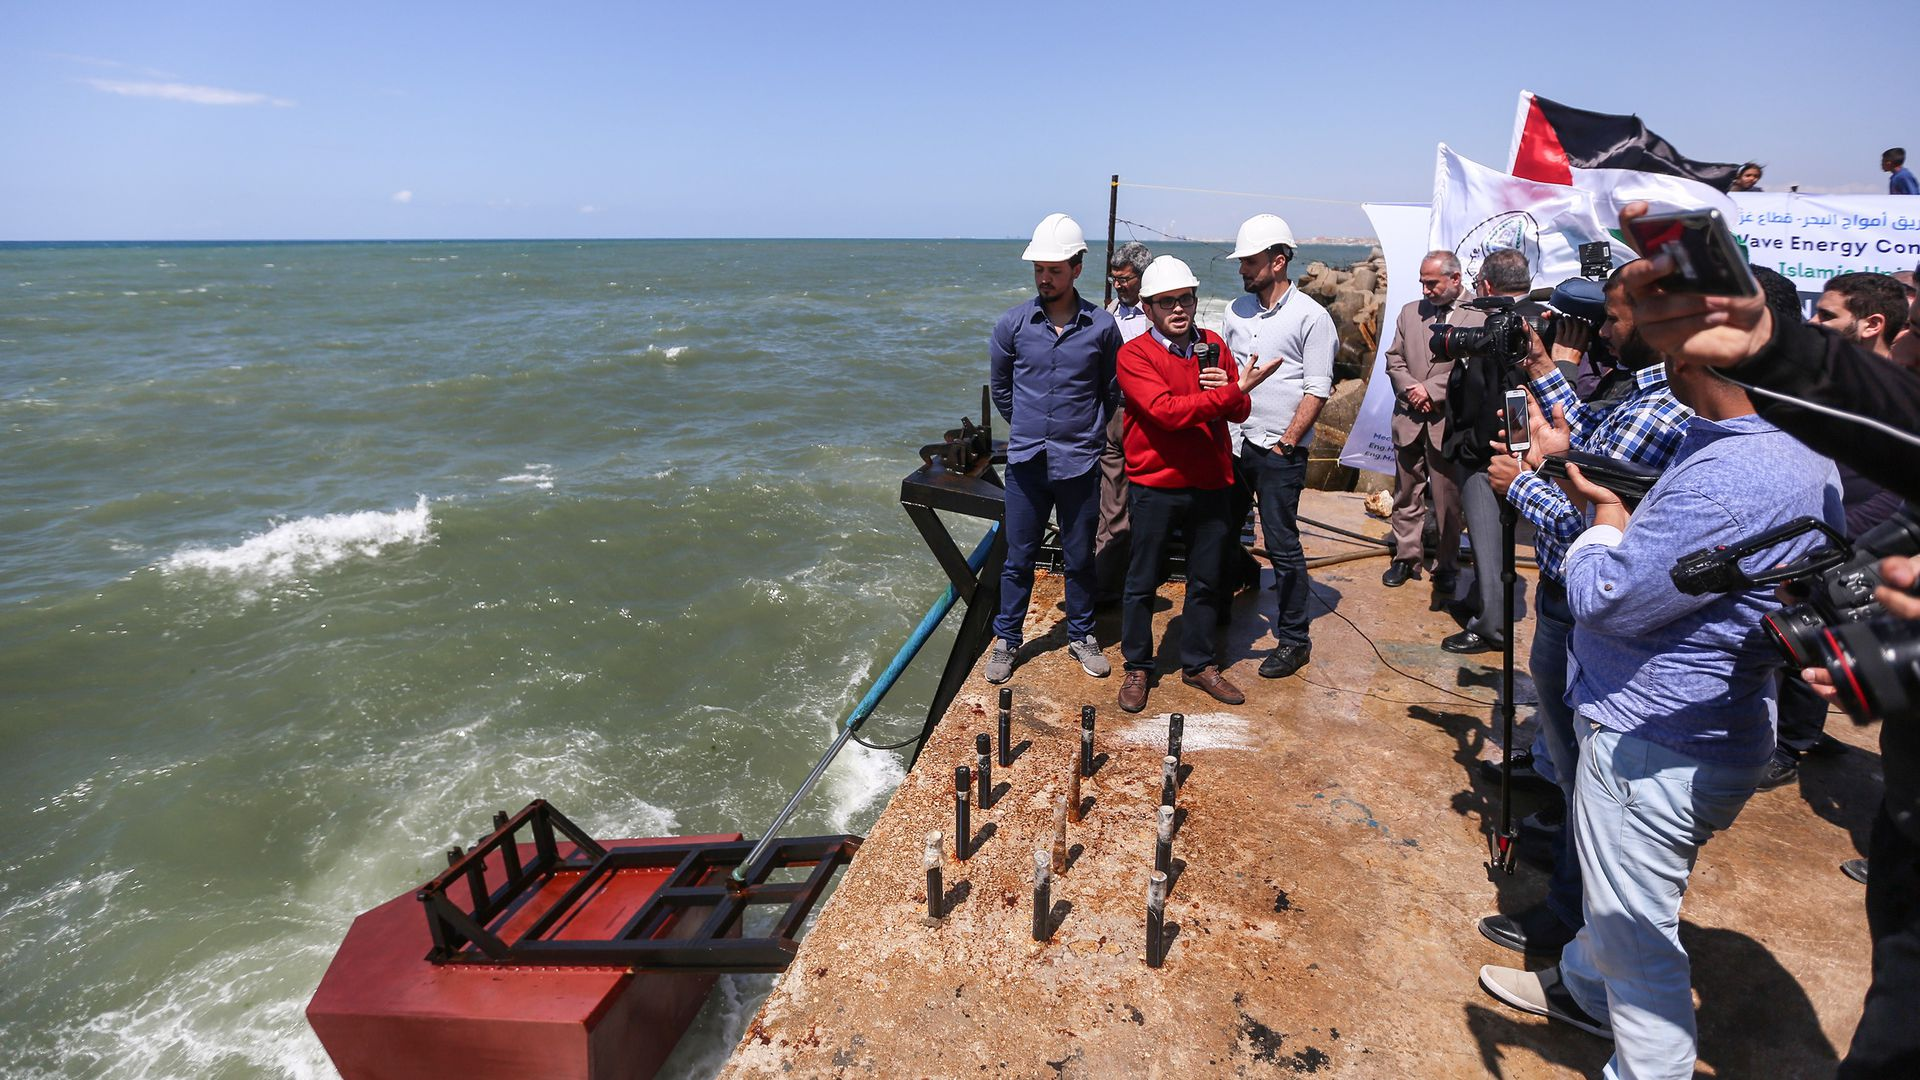 Palestinian academicians of Islamic University of Gaza attend the publicity ceremony of a tidal wave energy project at Gaza Port in Gaza City, Gaza, on April 22, 2018.